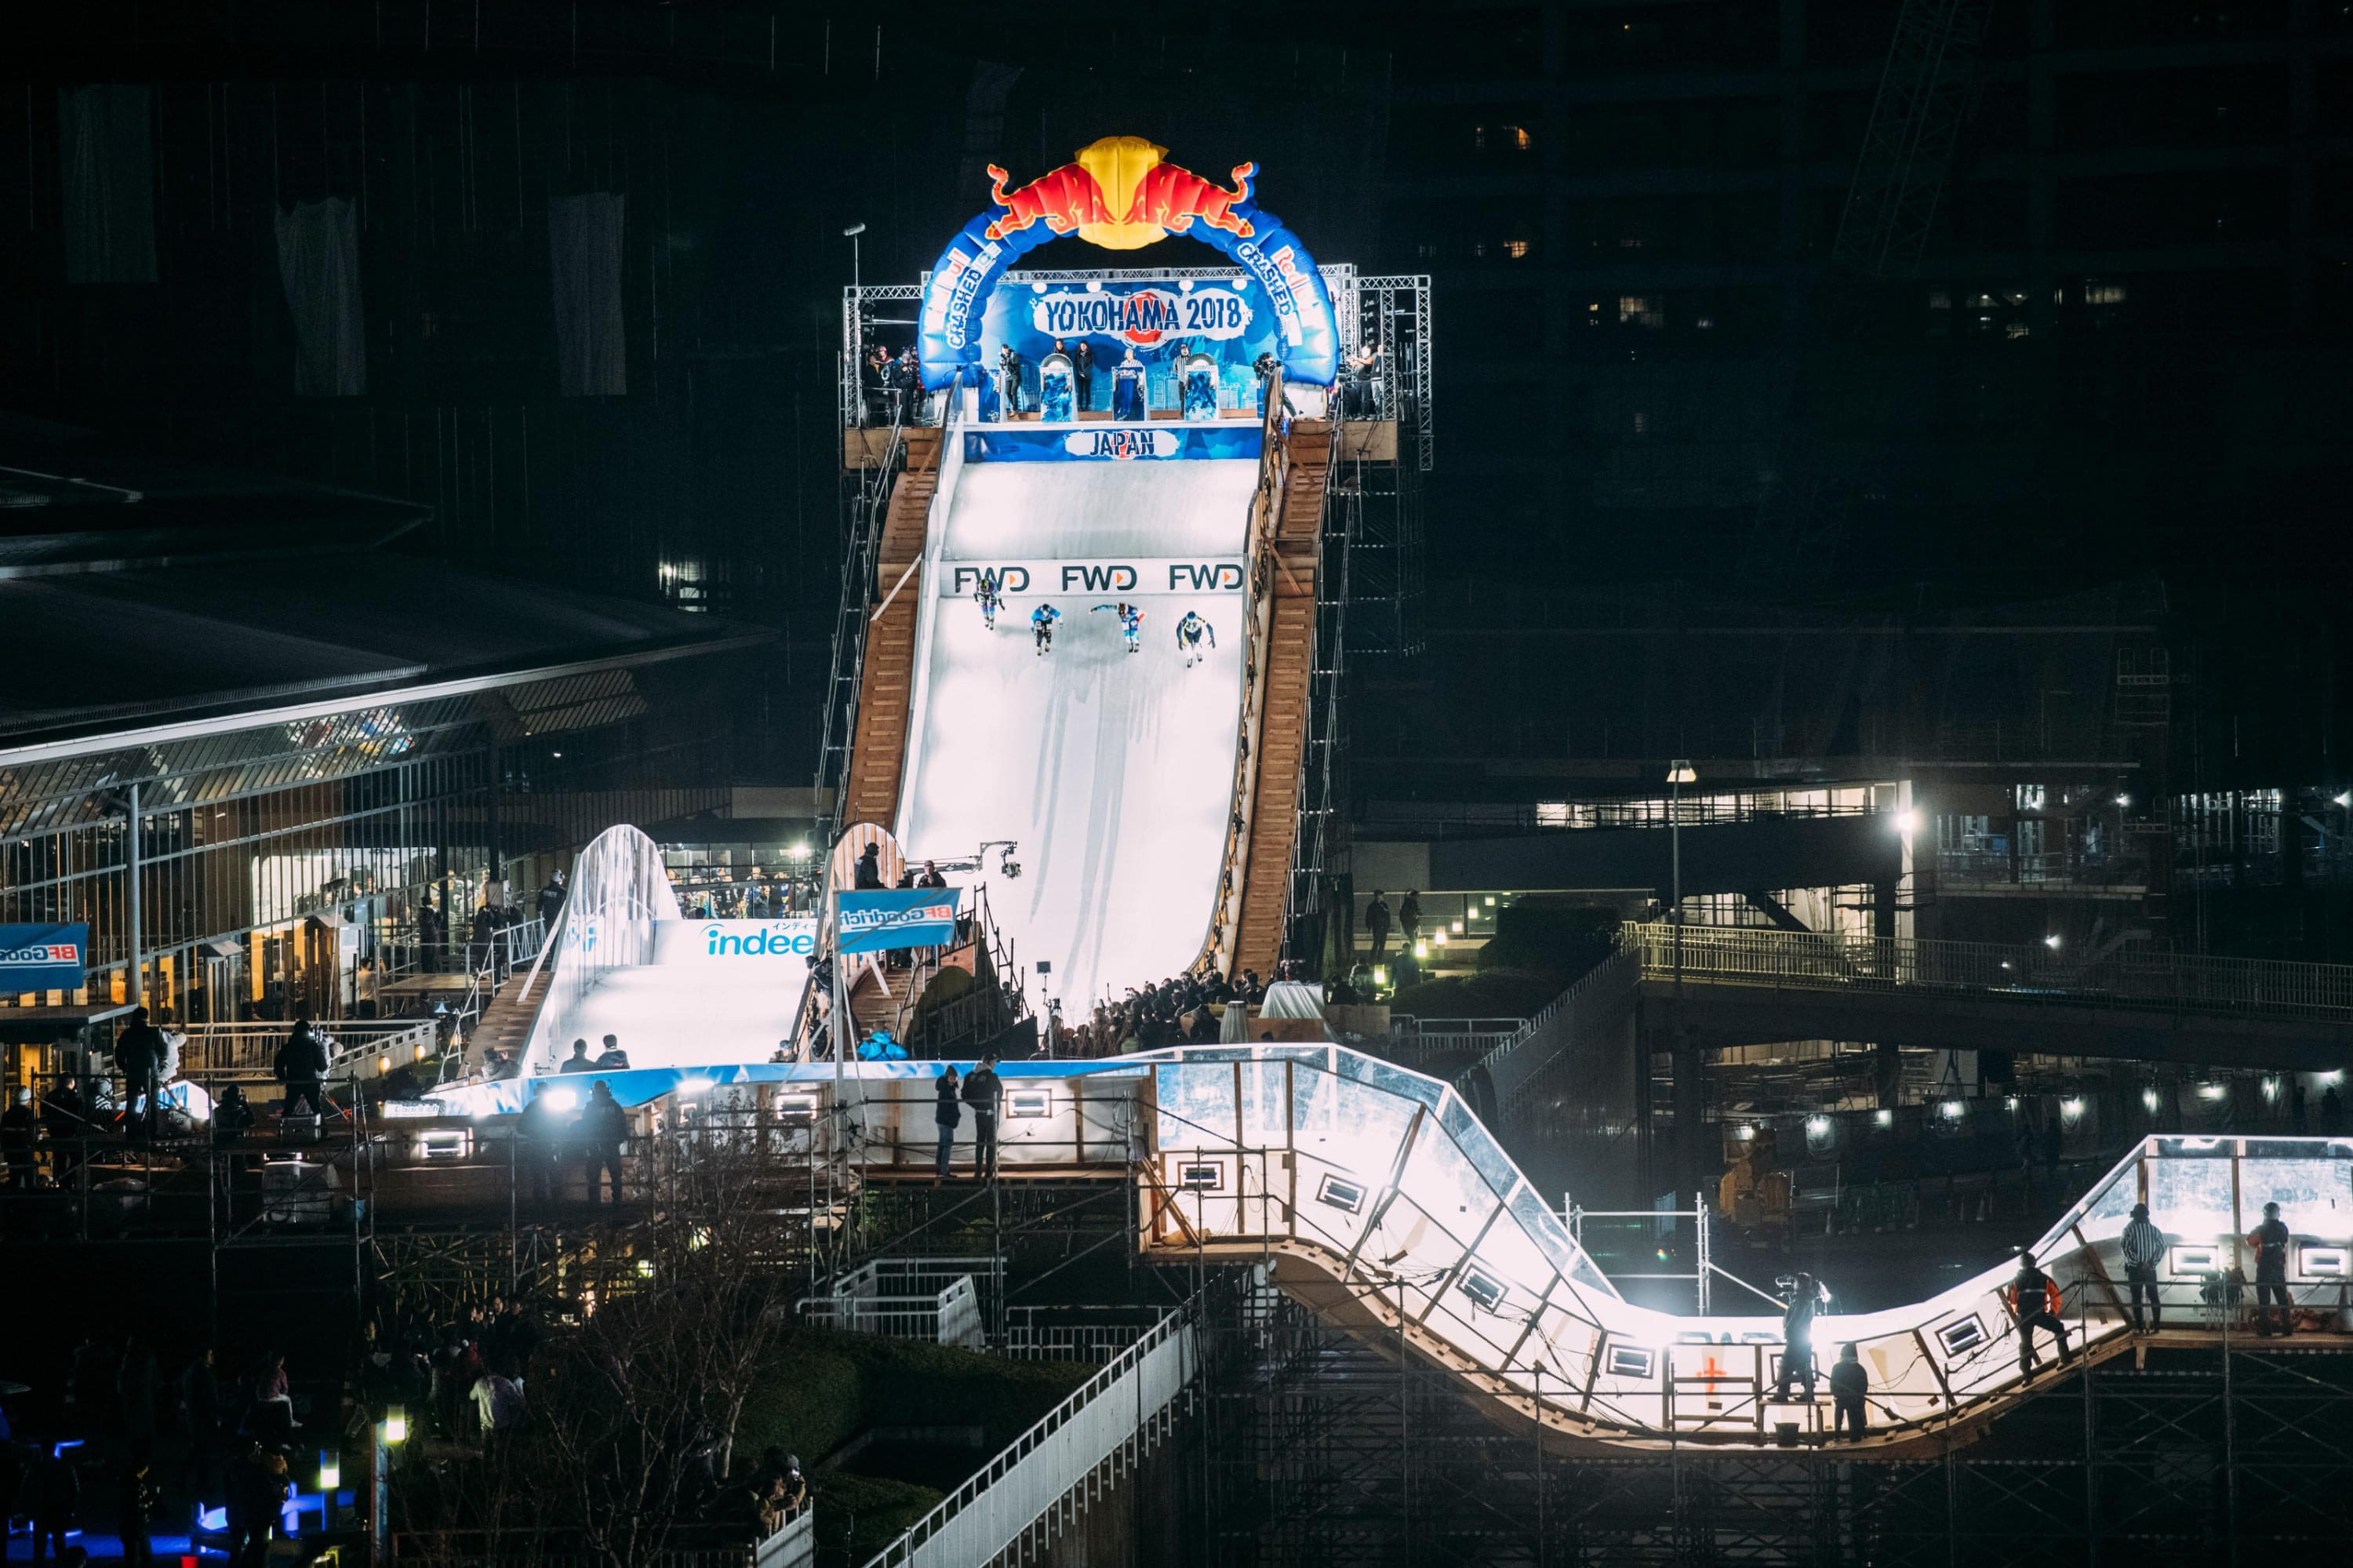 The 2020 track will feature even more challenges for the athletes. Image: Suguru Saito / Red Bull Content Pool